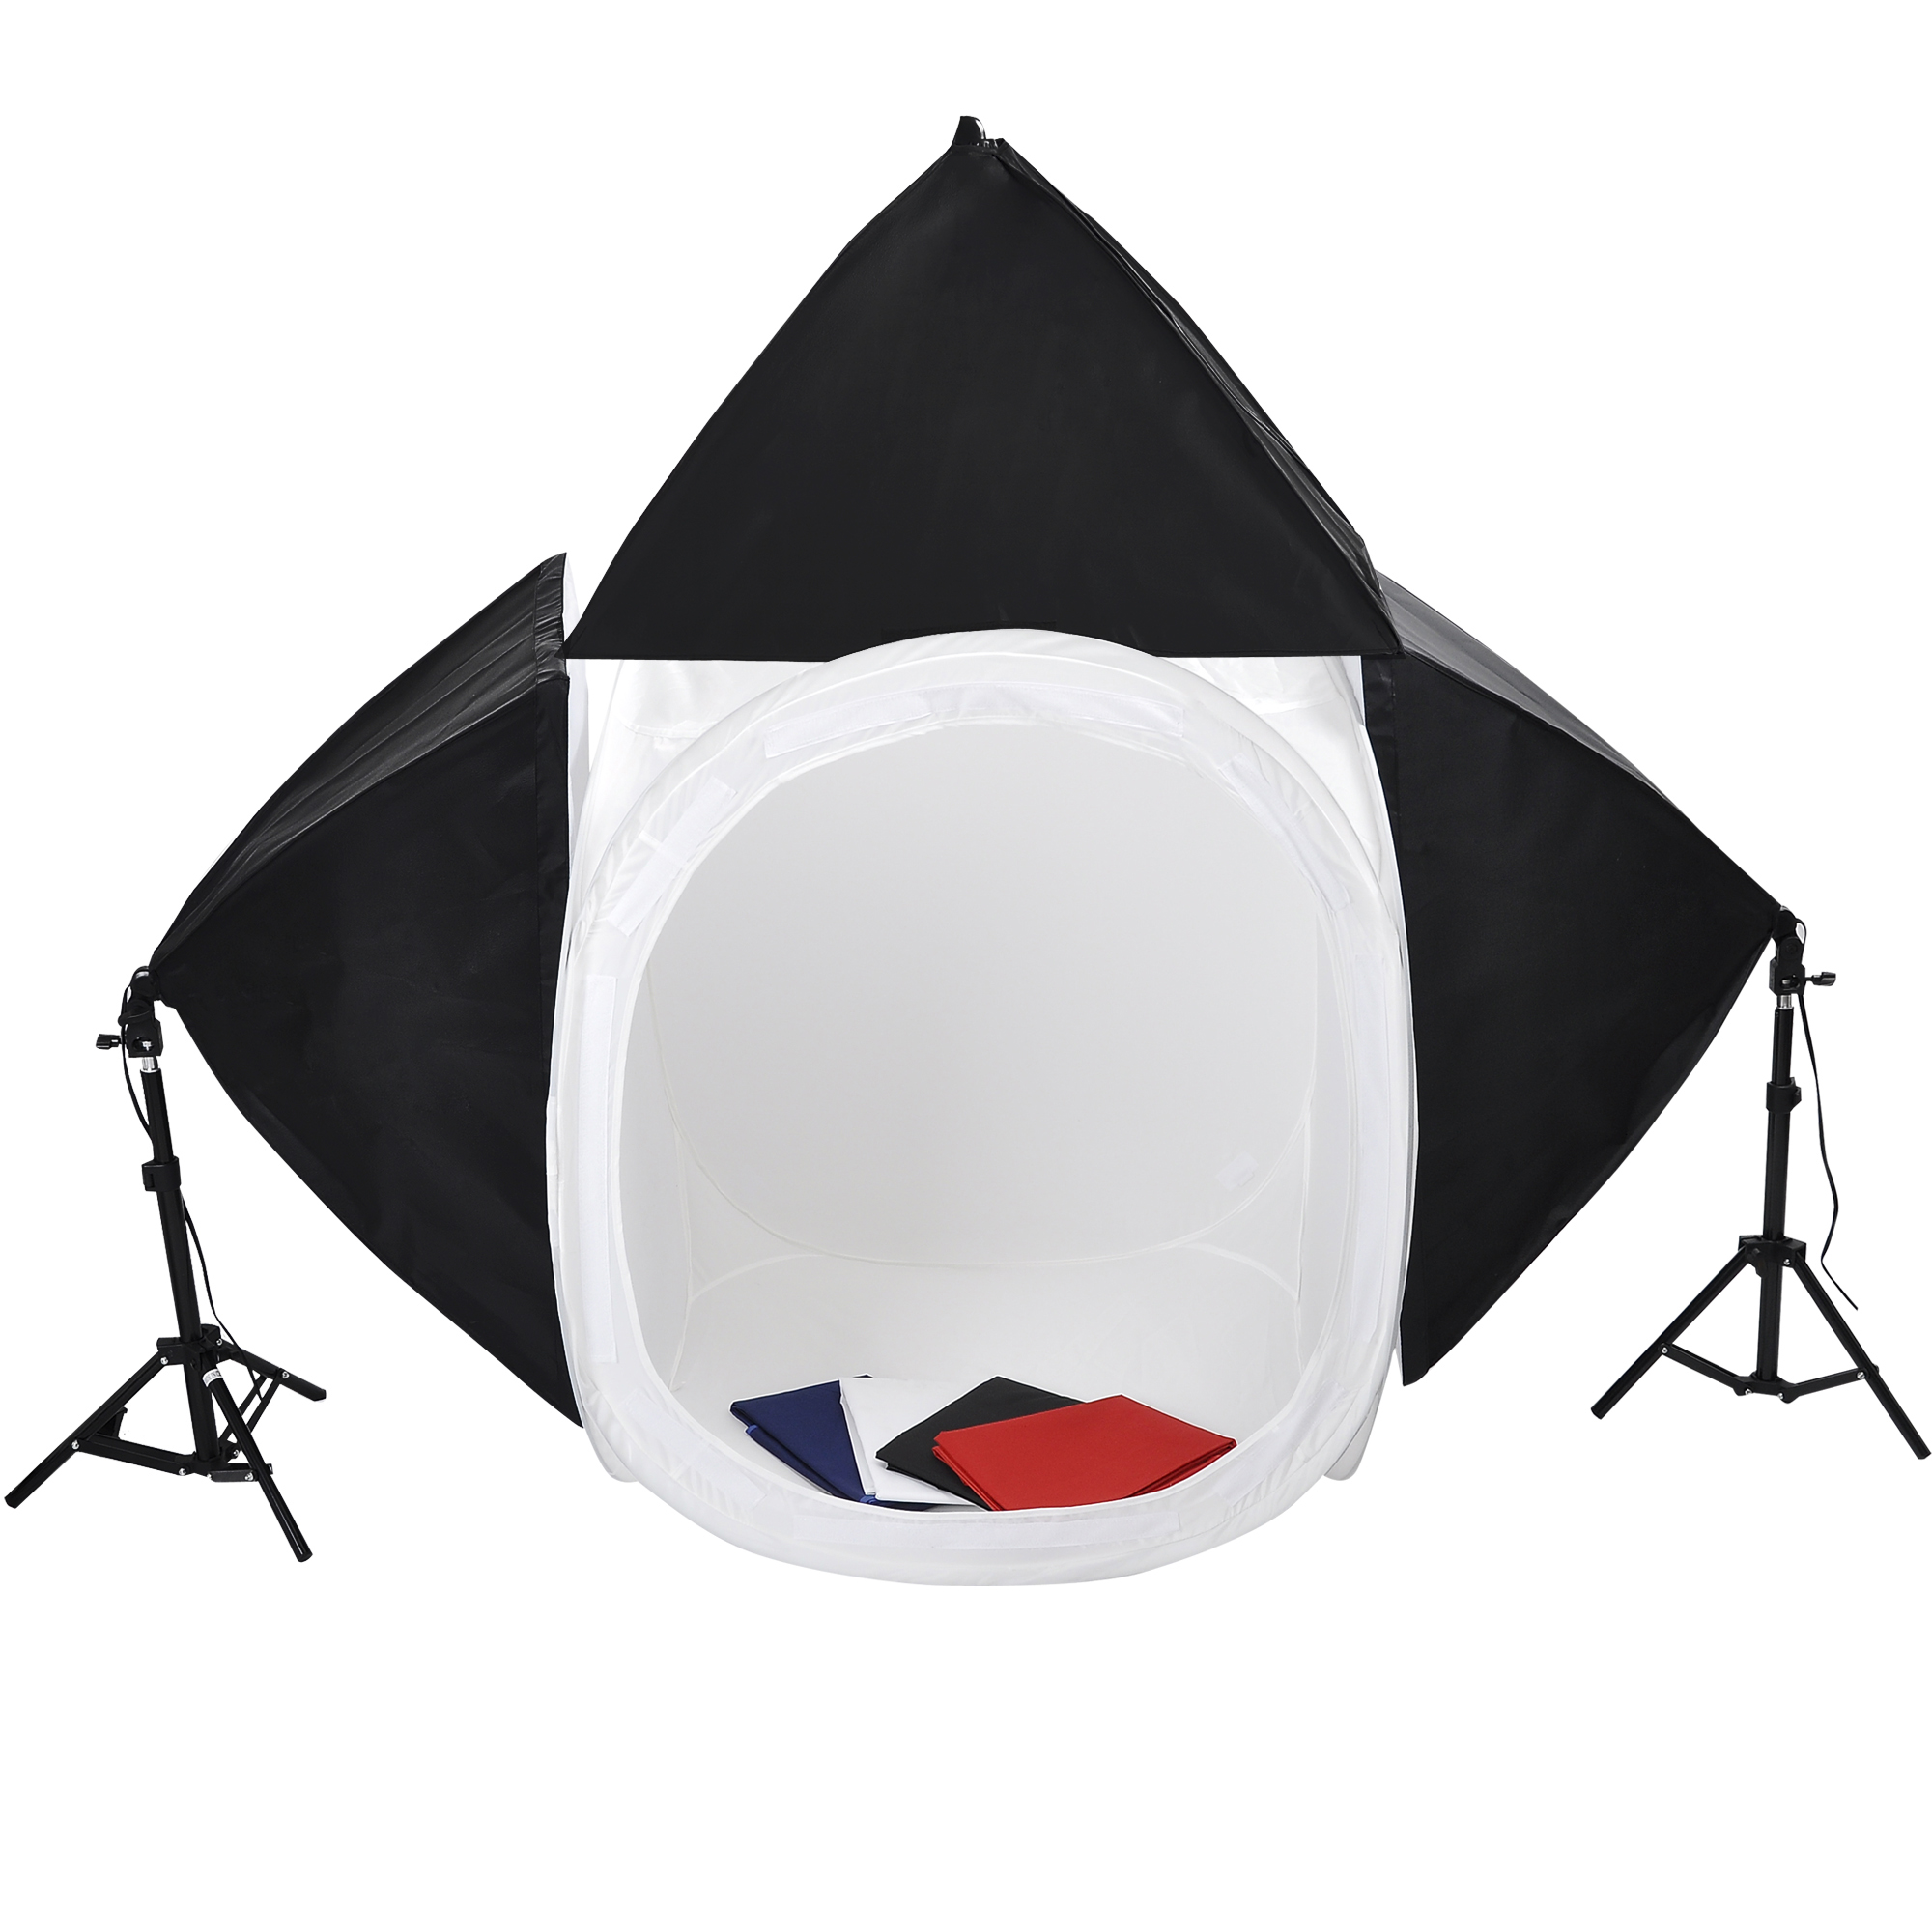 Image is loading 32-034-Photo-Studio-Cube-Light-Tent-Photography-  sc 1 st  eBay & 32